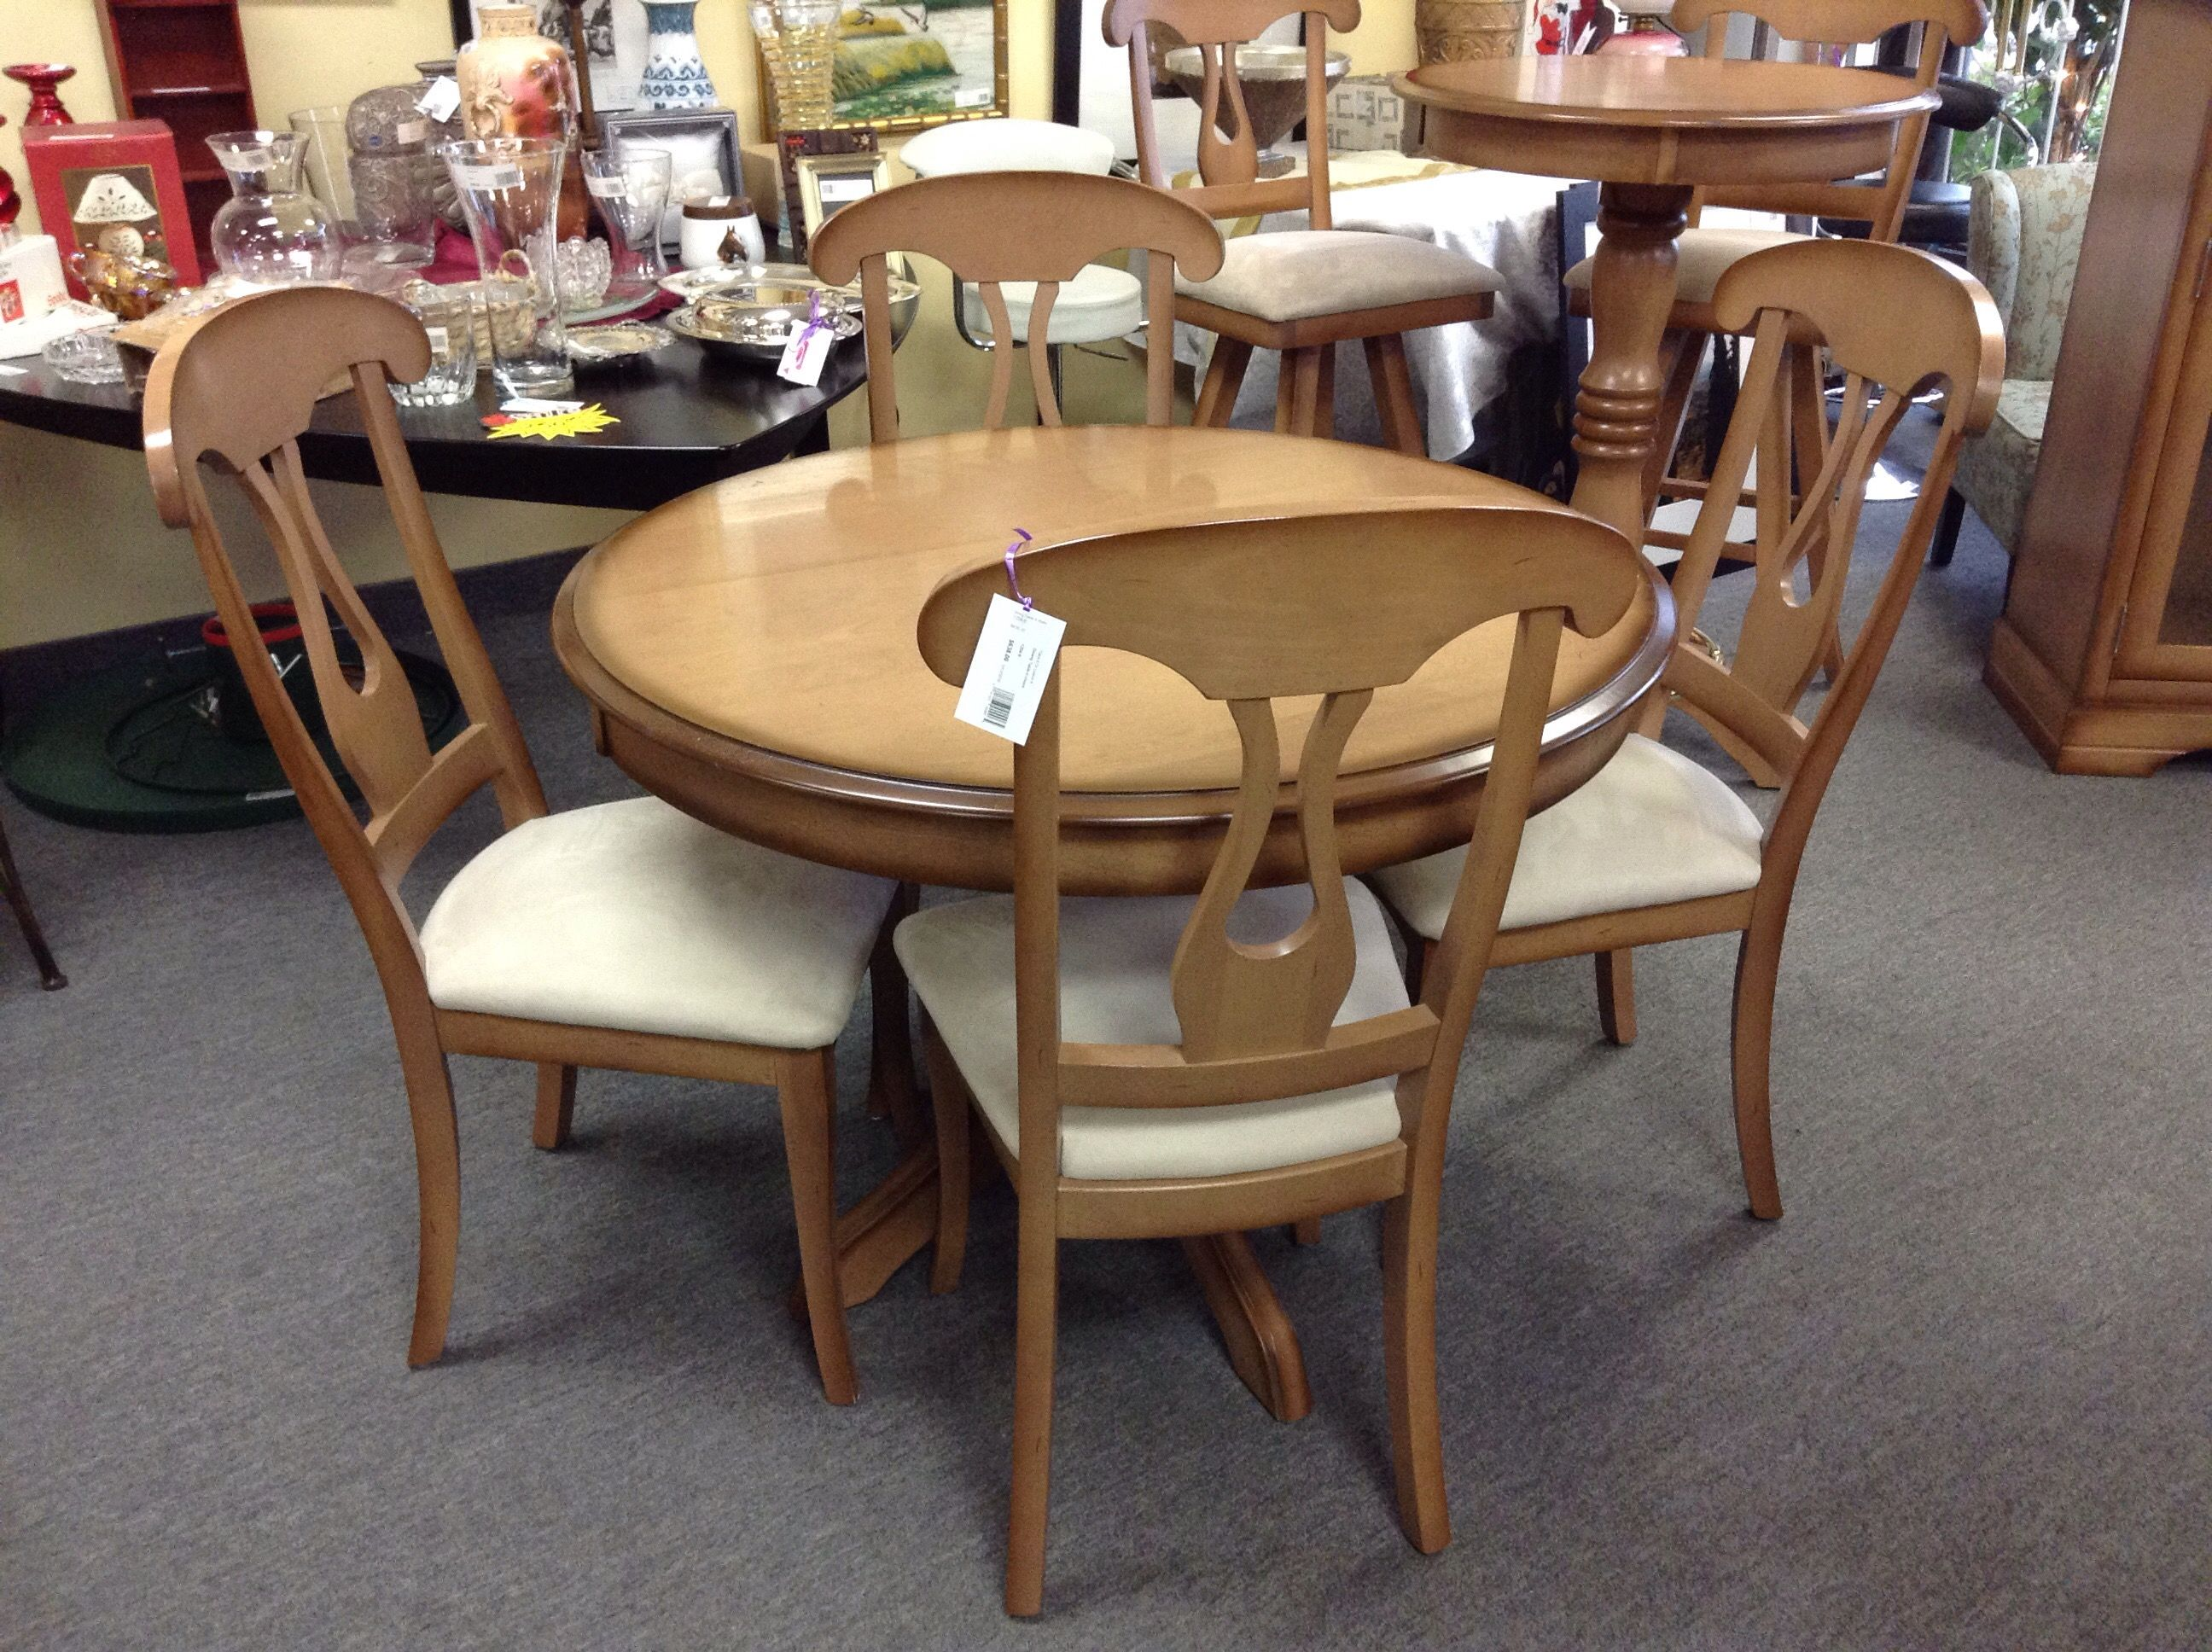 Round Dining Table Includes 4 Chairs 42 Inch Diameter With